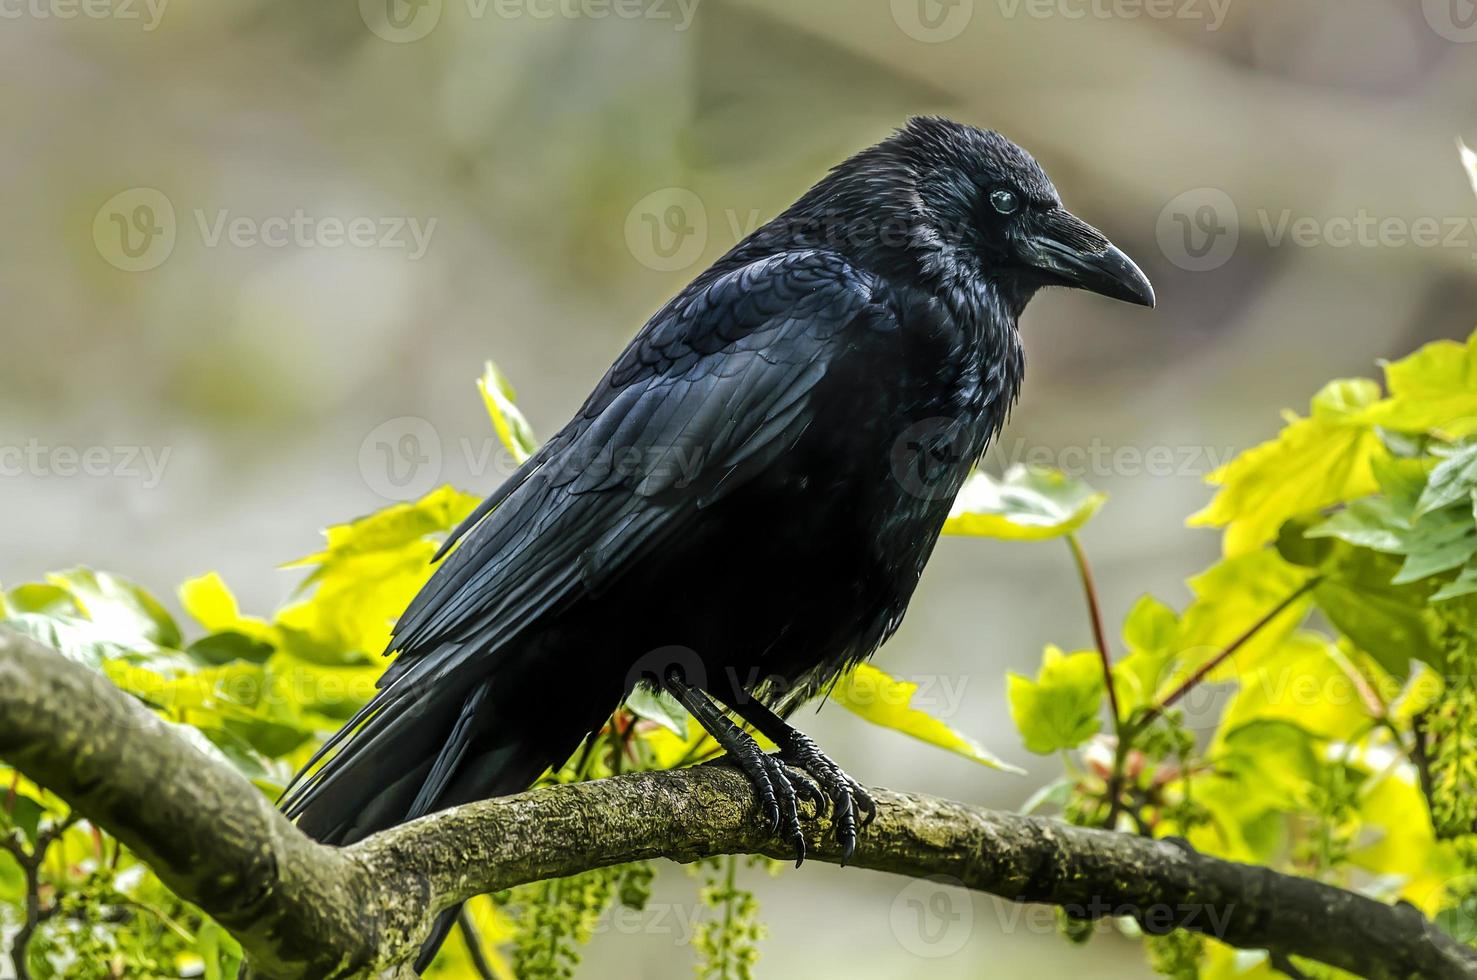 Crow, Corvus corone, perched on a branch, close up photo